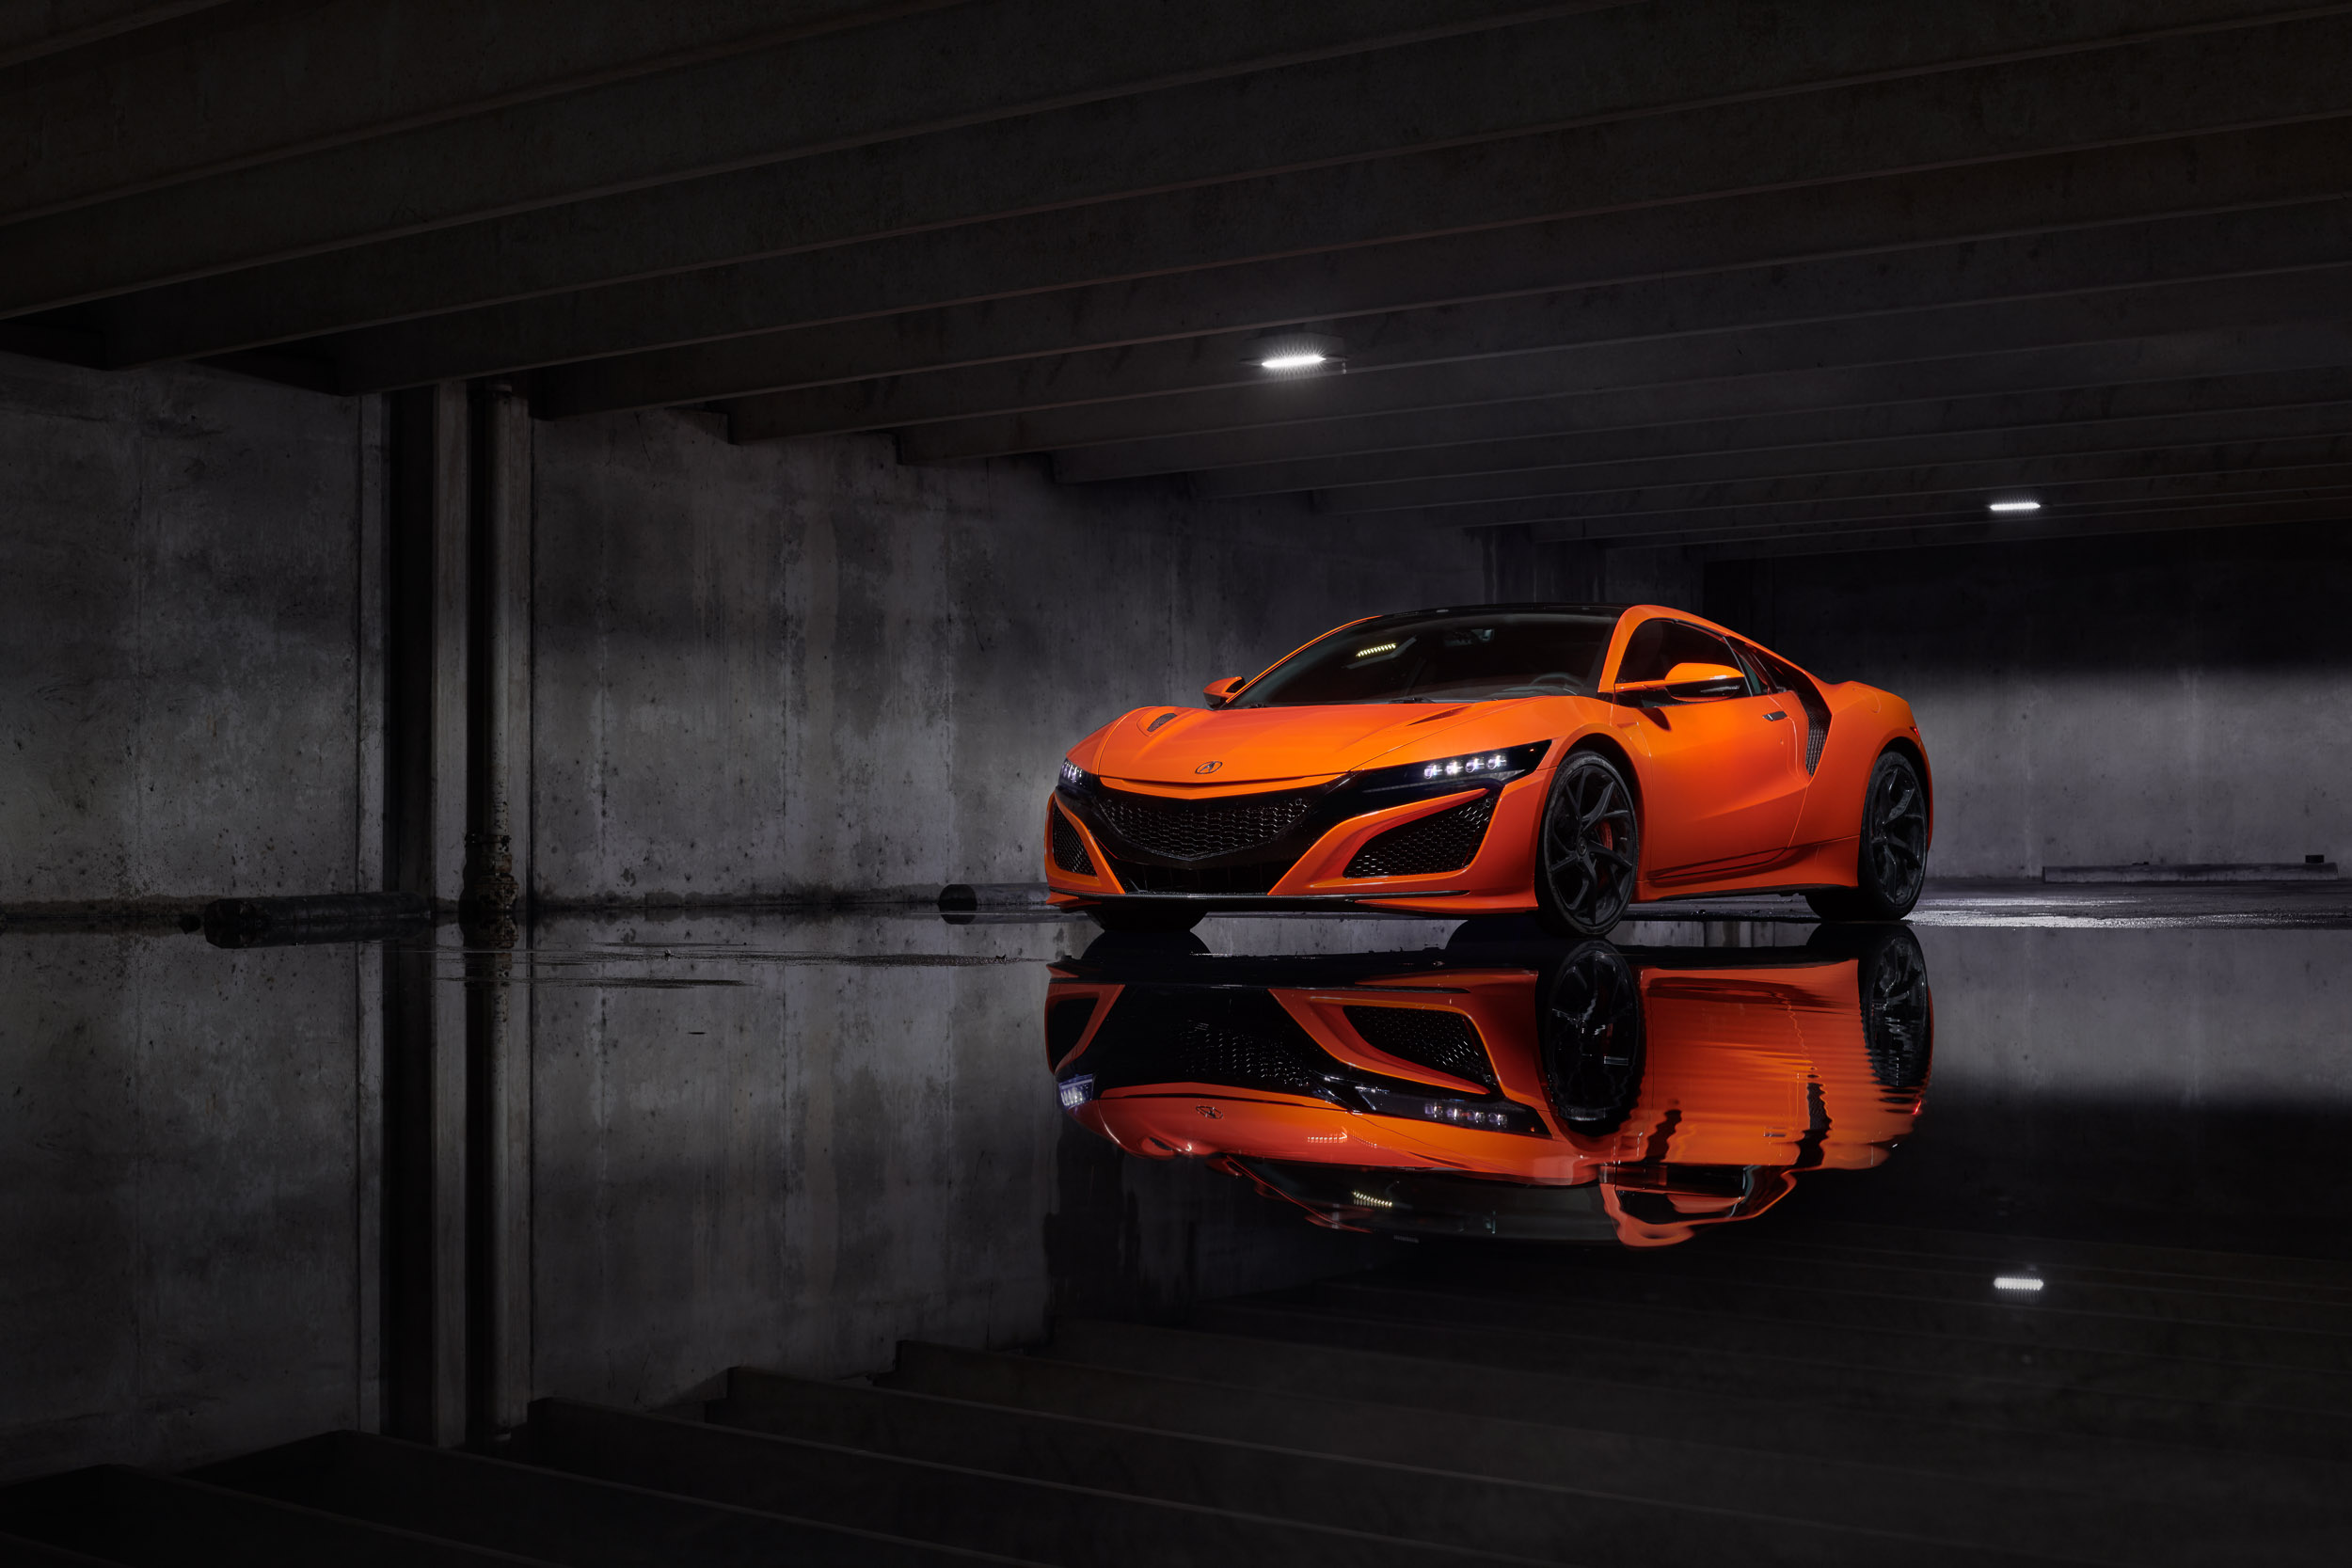 201904-BJP-Acura-day07-nsx-ext-010435_f1.2